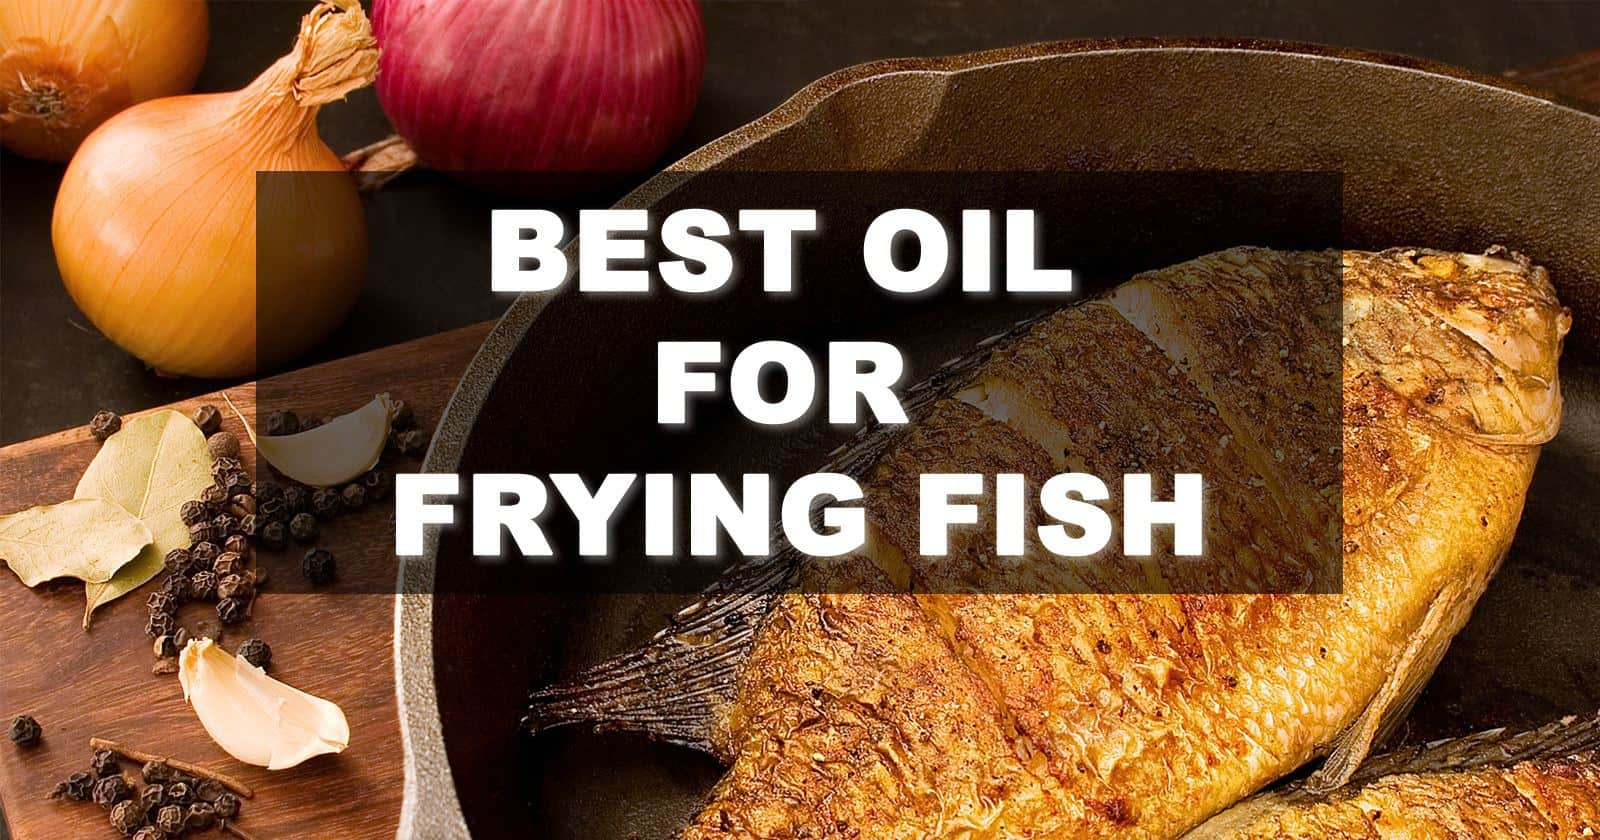 Best Oil for Frying Fish